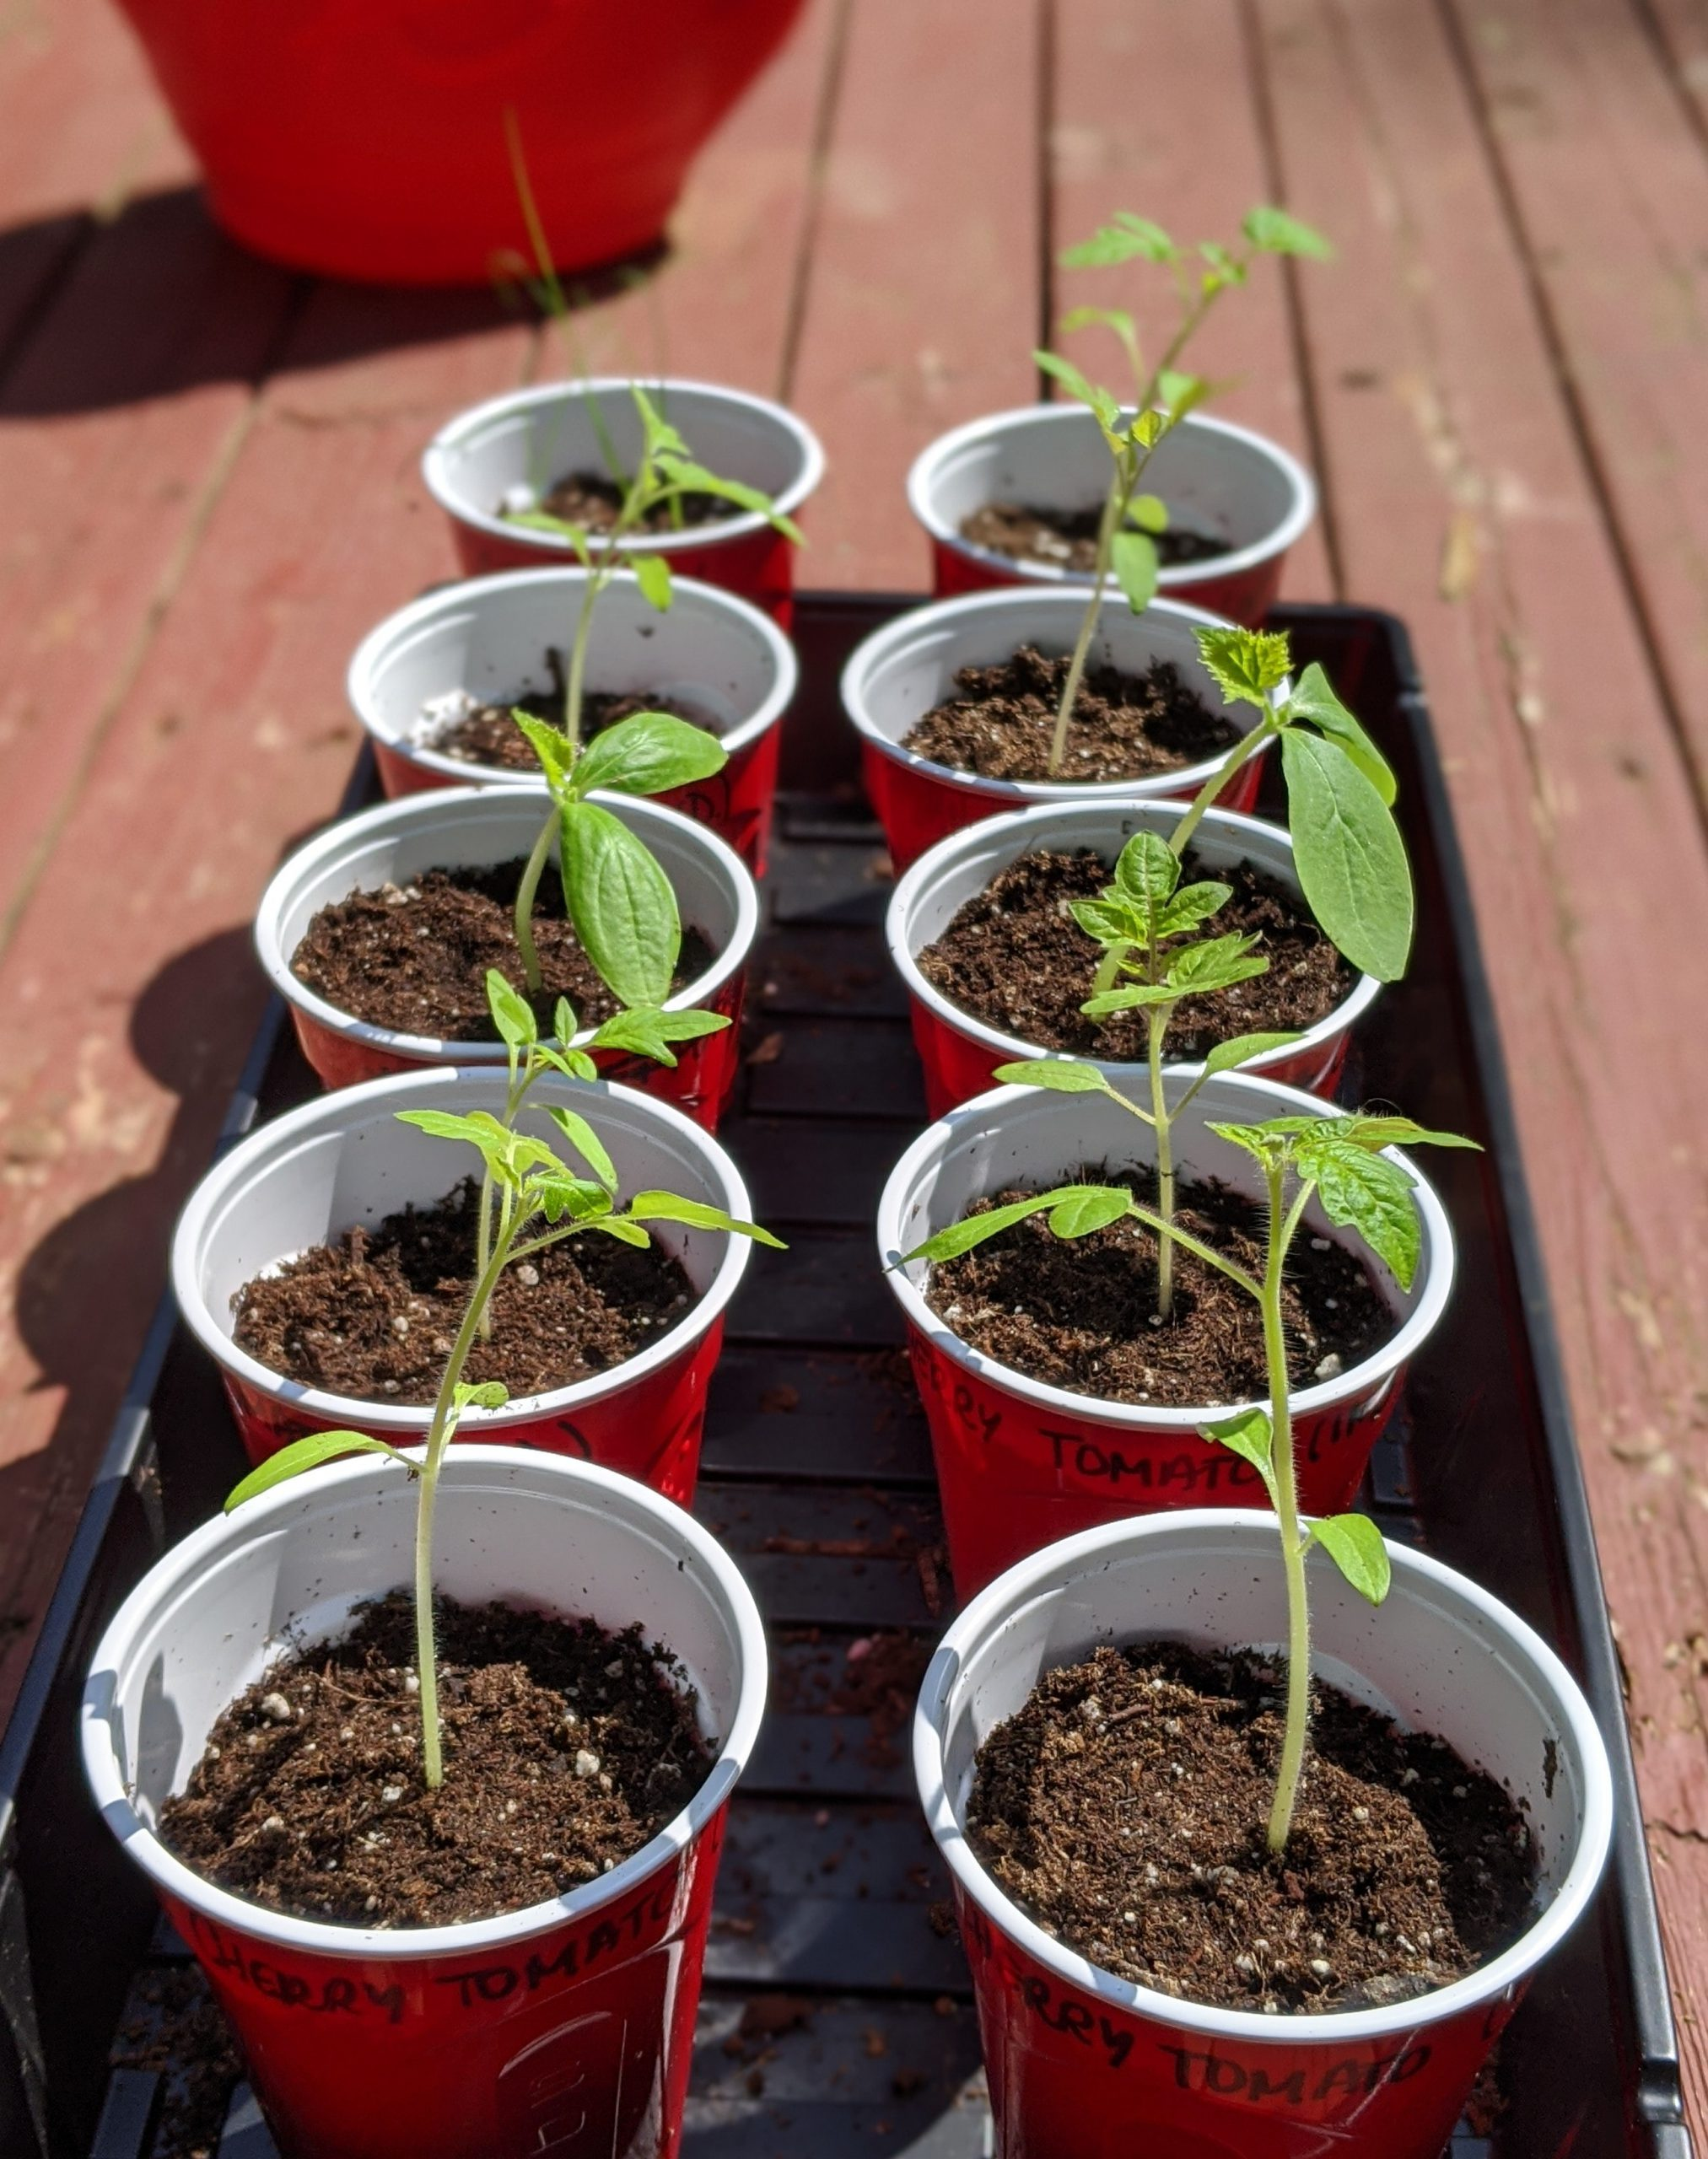 growing tomatoes in a red cup